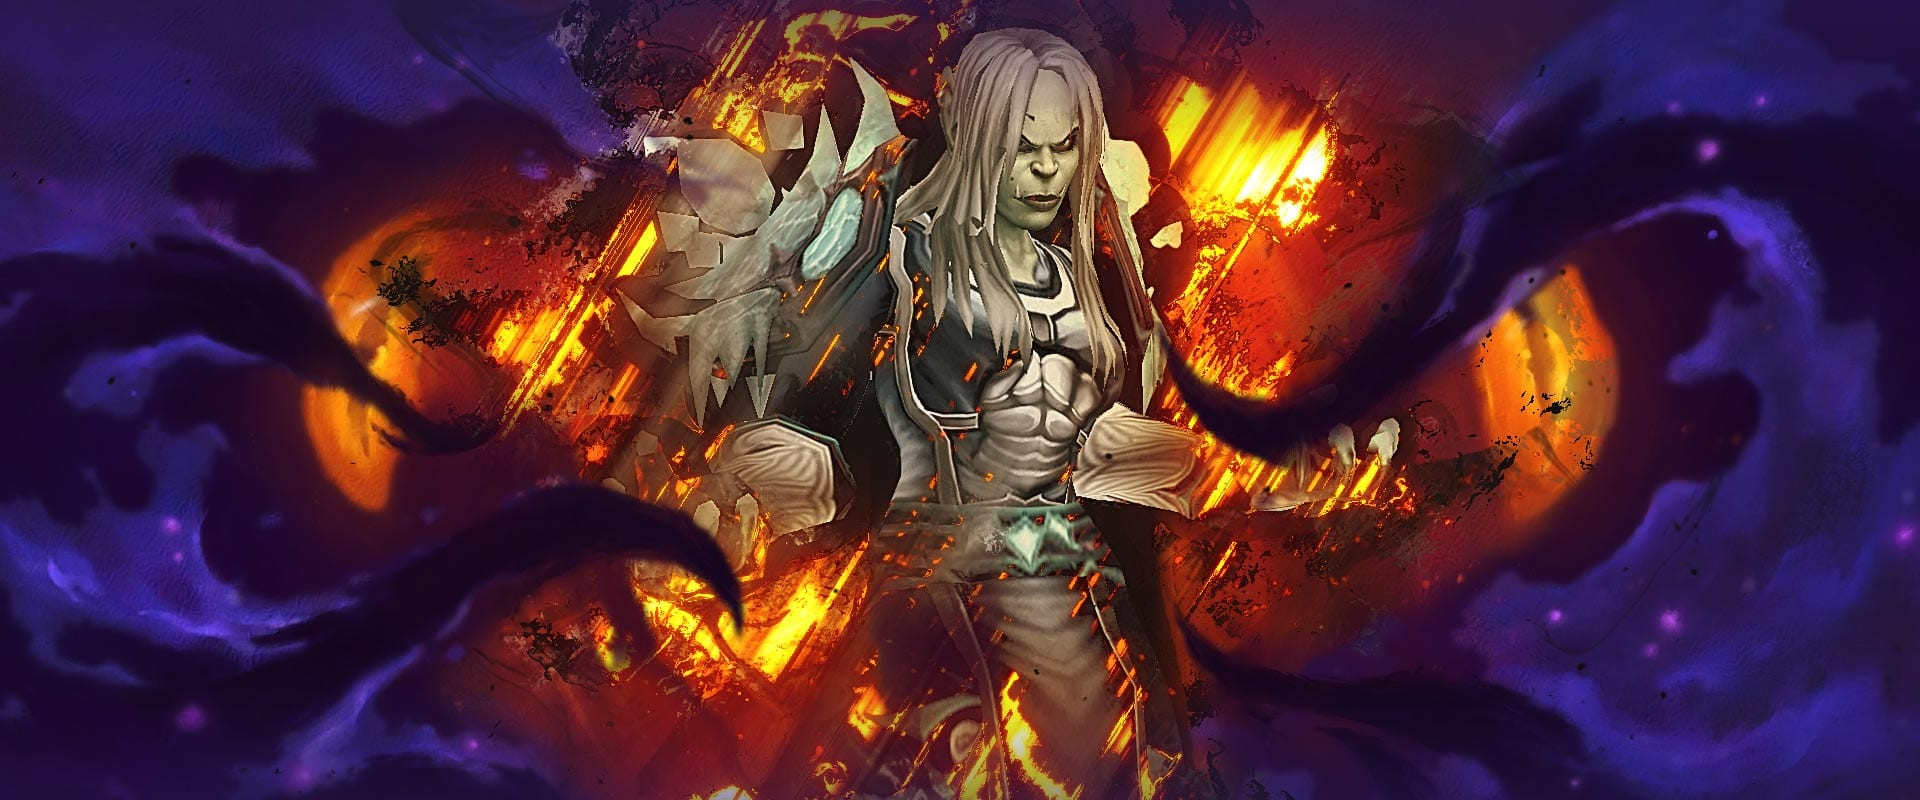 Fire Mage Pvp Guide Battle For Azeroth 8 3 World Of Warcraft